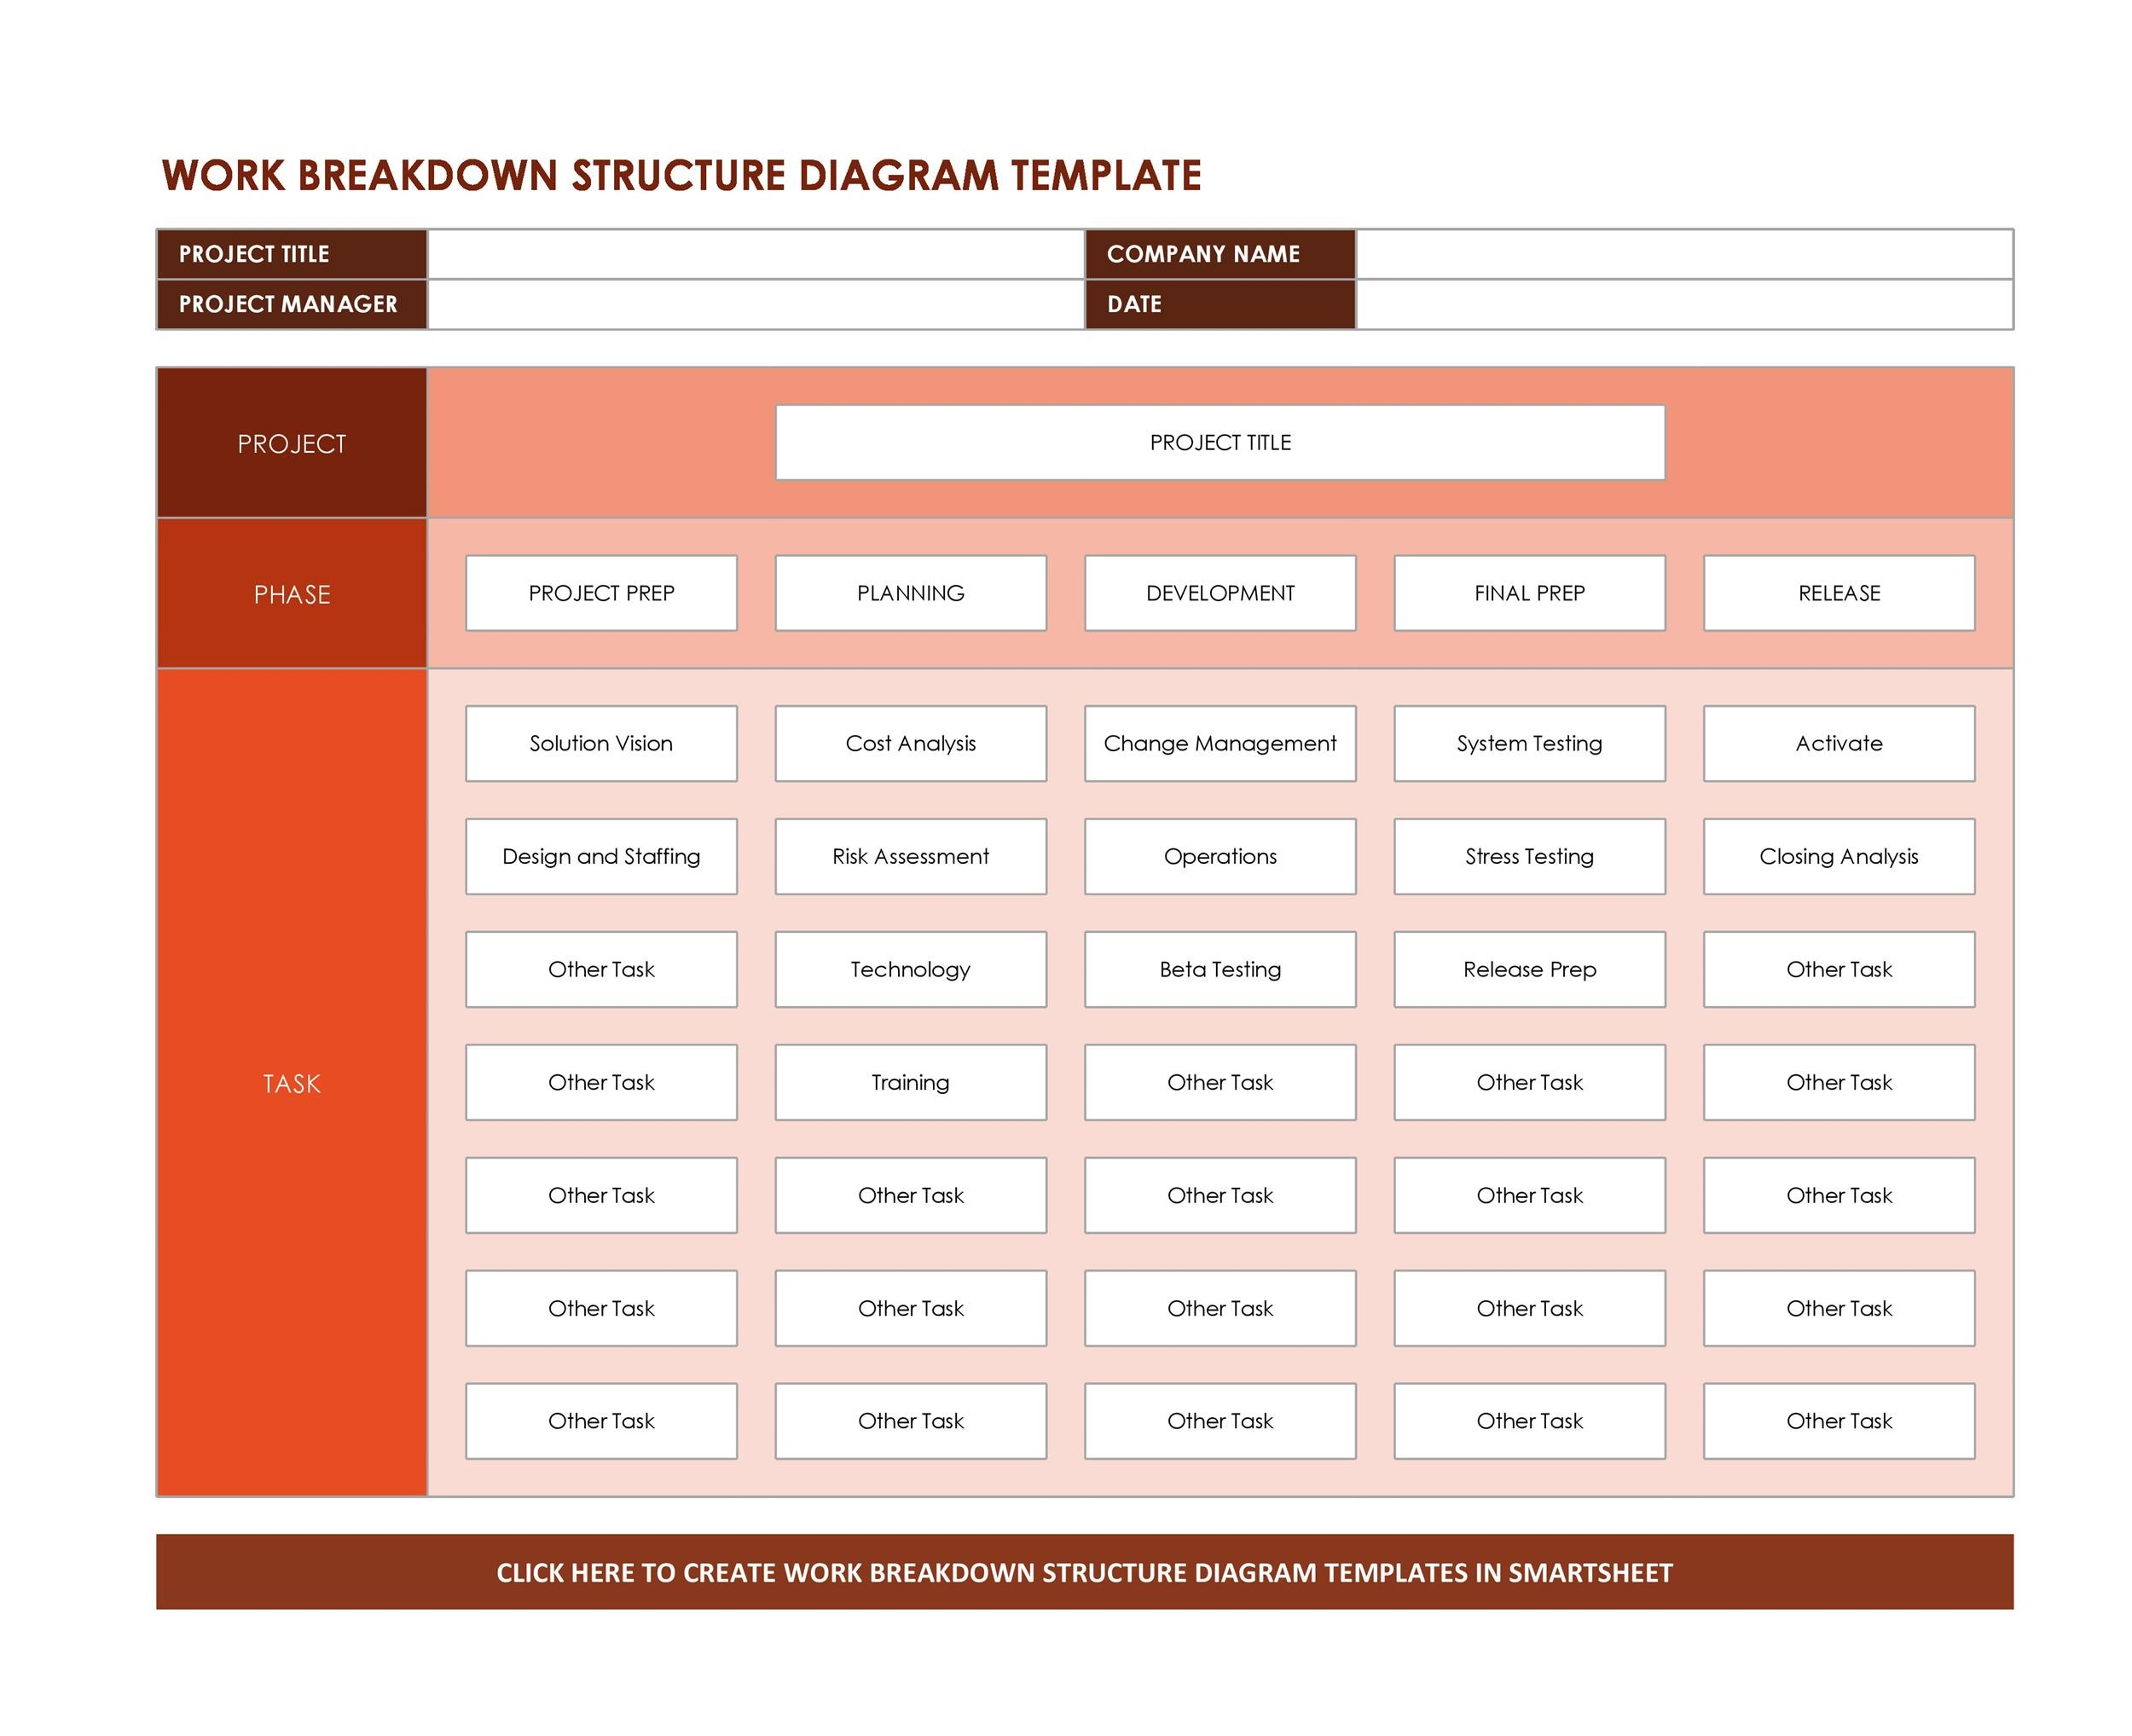 30+ Work Breakdown Structure Templates Free - Template Lab